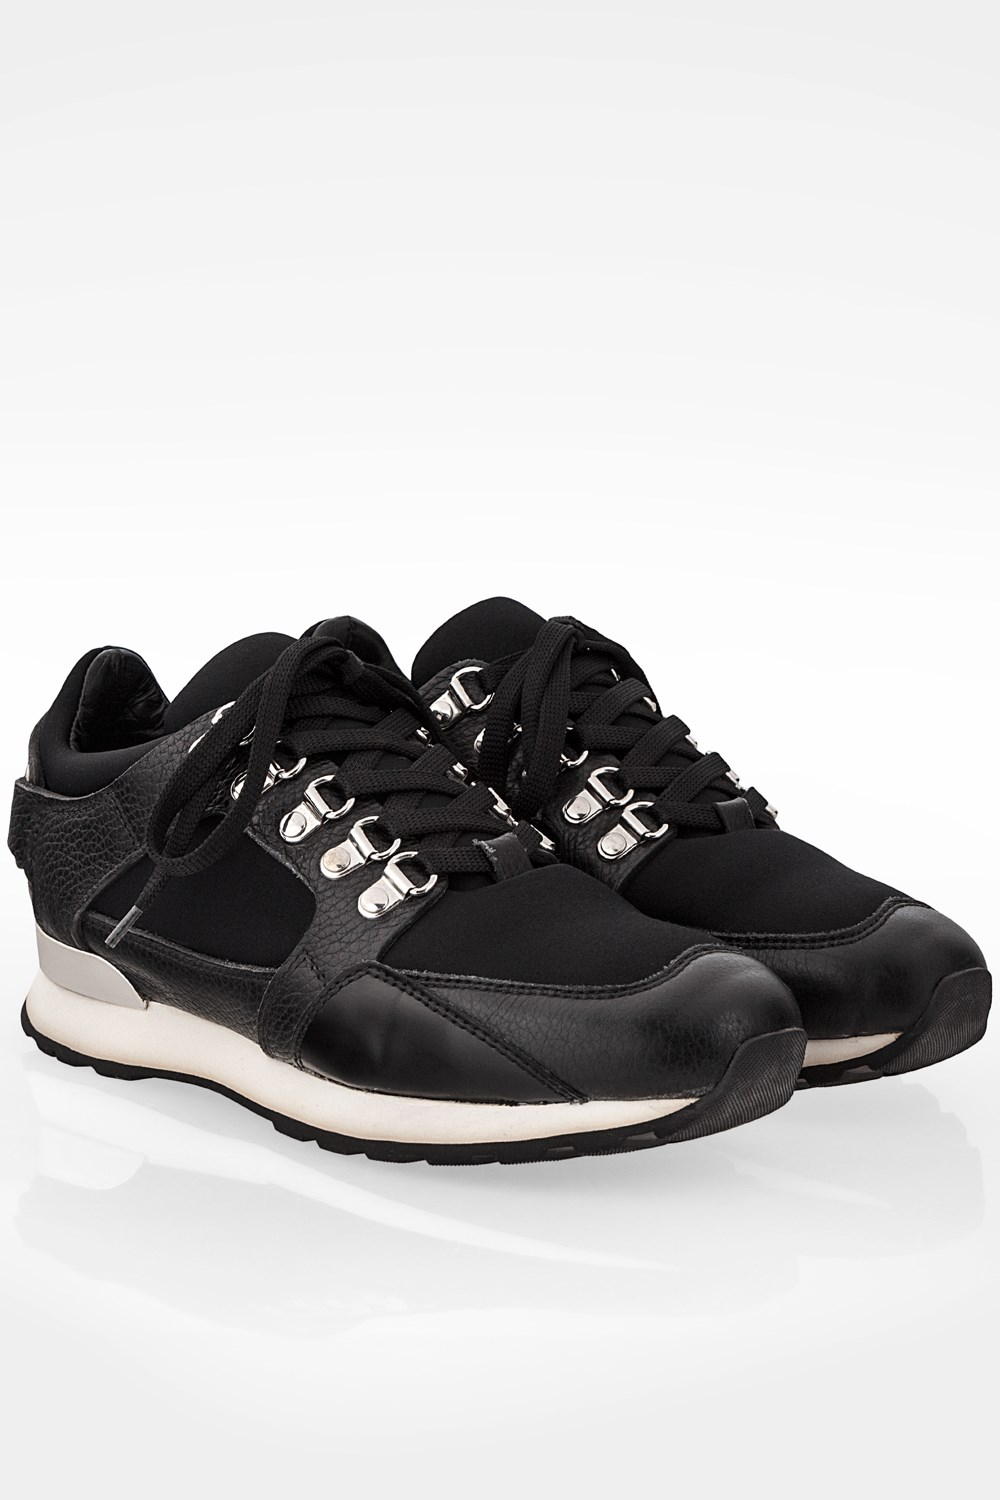 Black Sneakers with Plaque / Size: 37